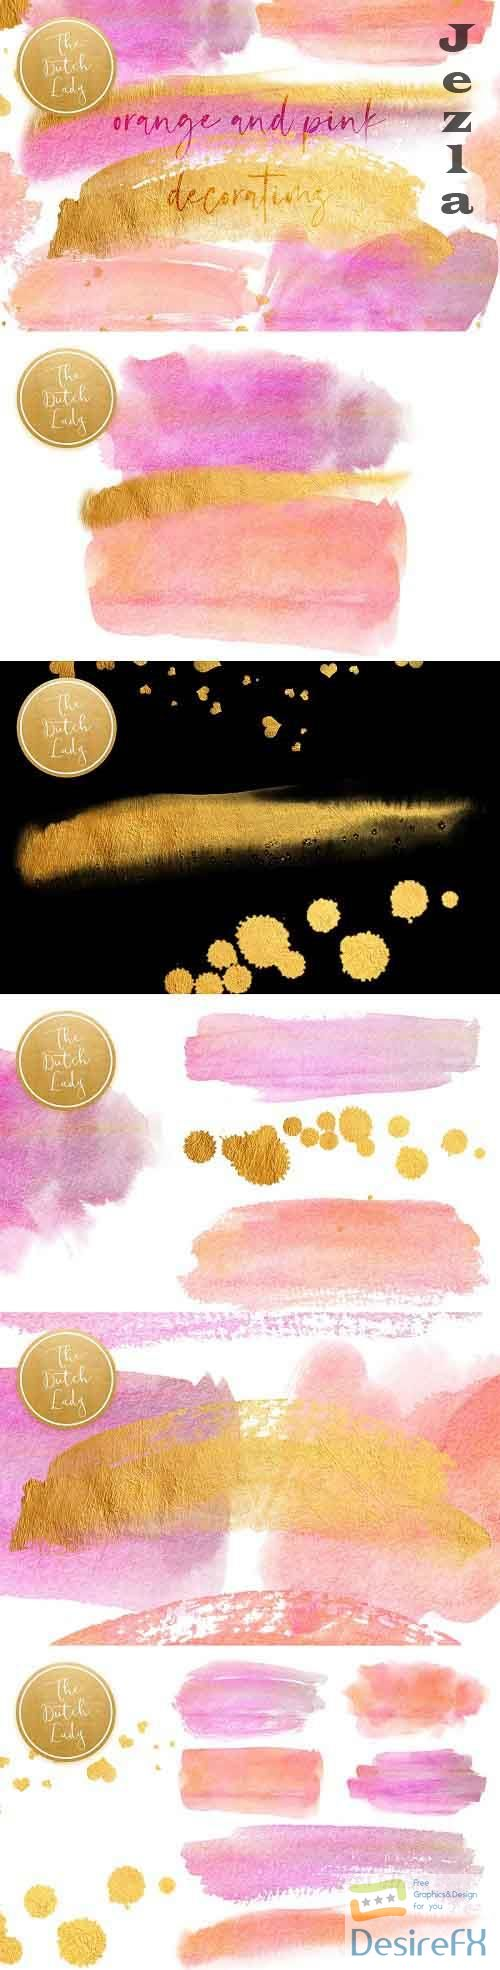 Orange & Pink Watercolor Smears - 5098204